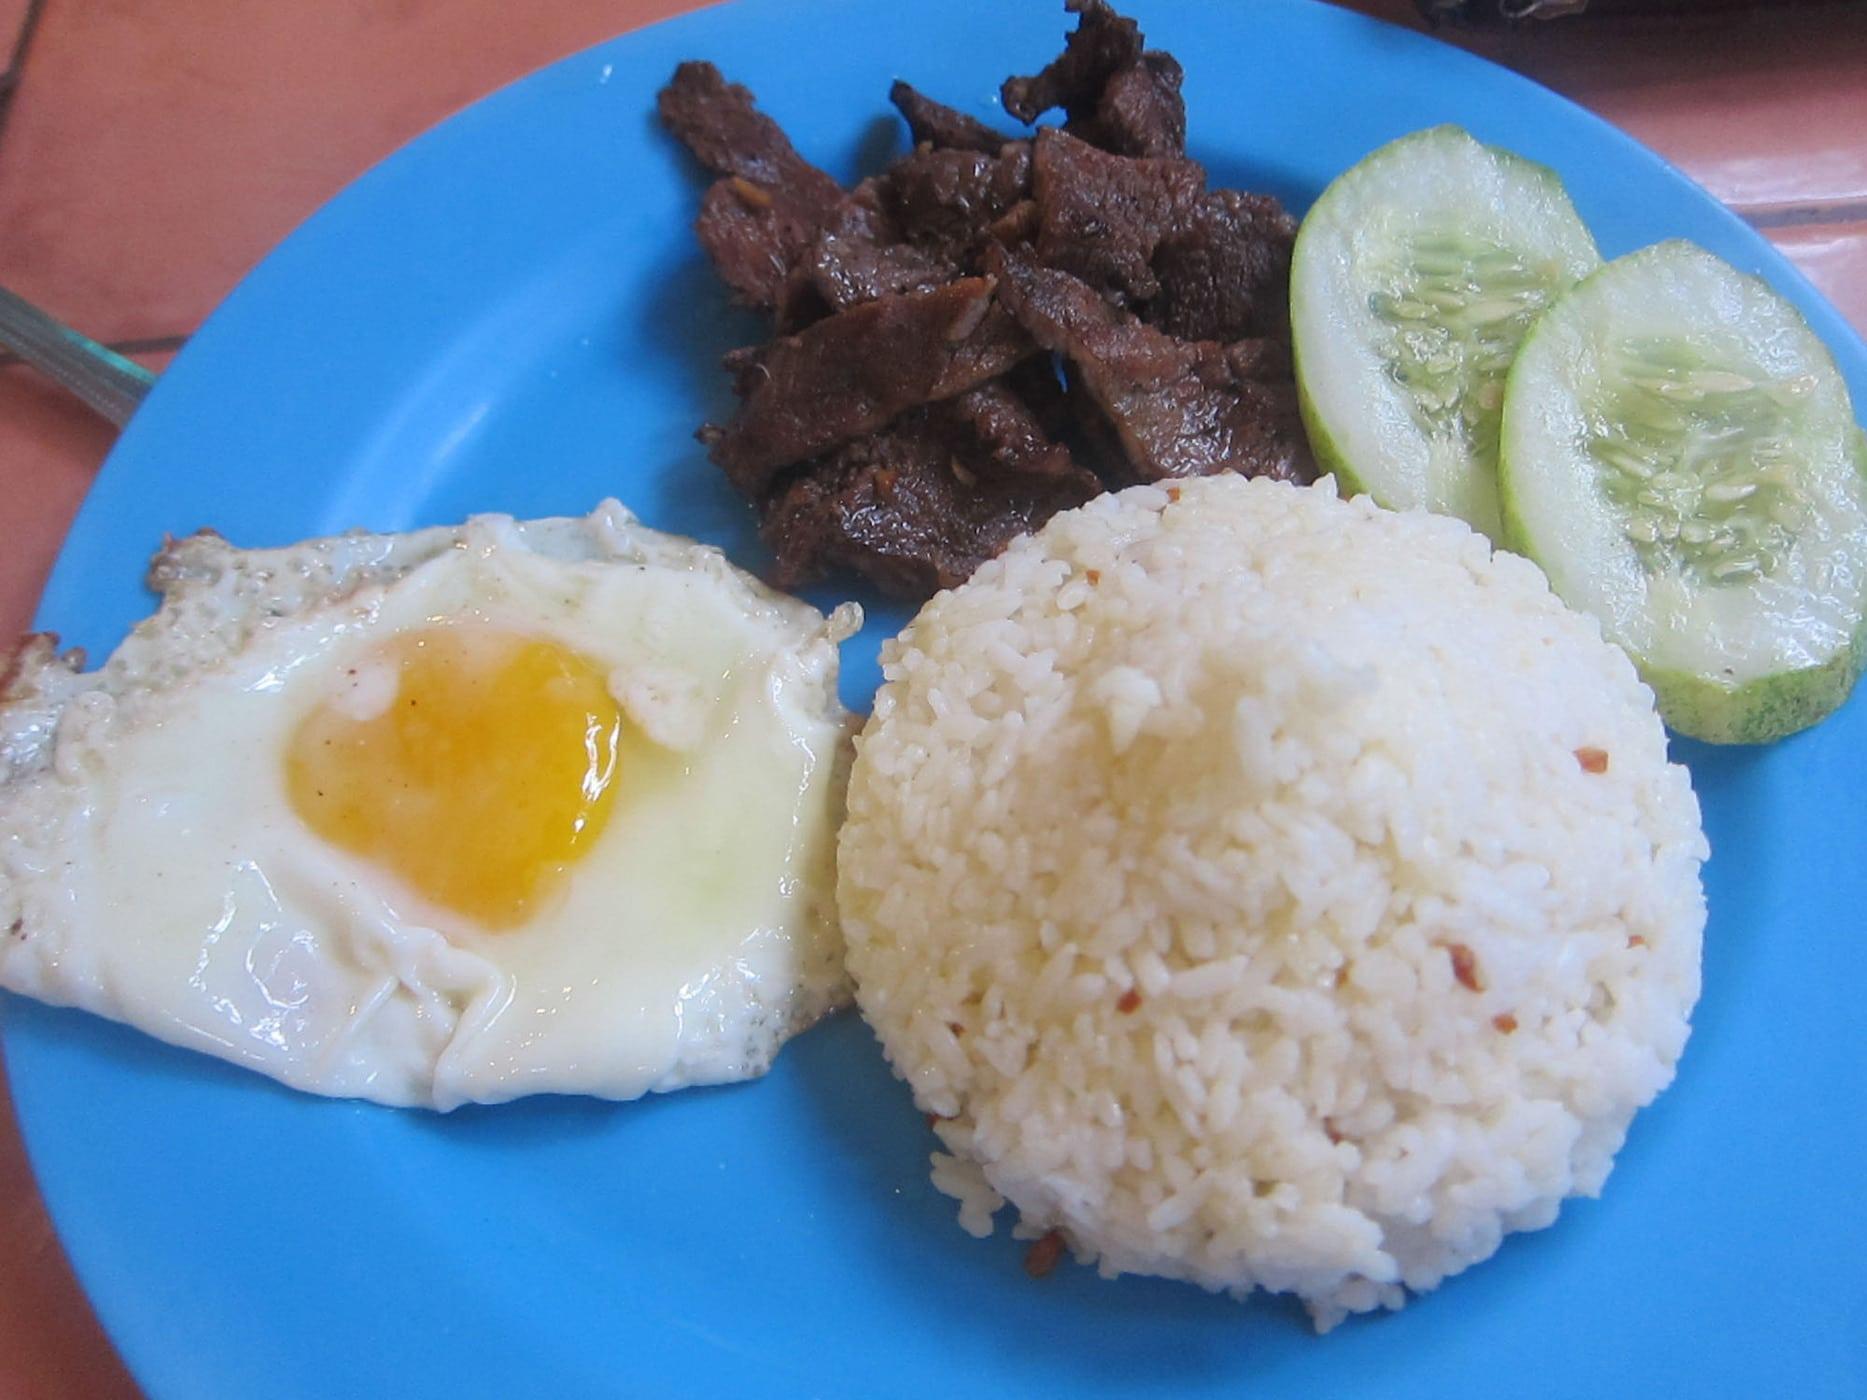 Food in the Philippines: What I ate in The Philippines. Tapa in Boracay, Philippines.